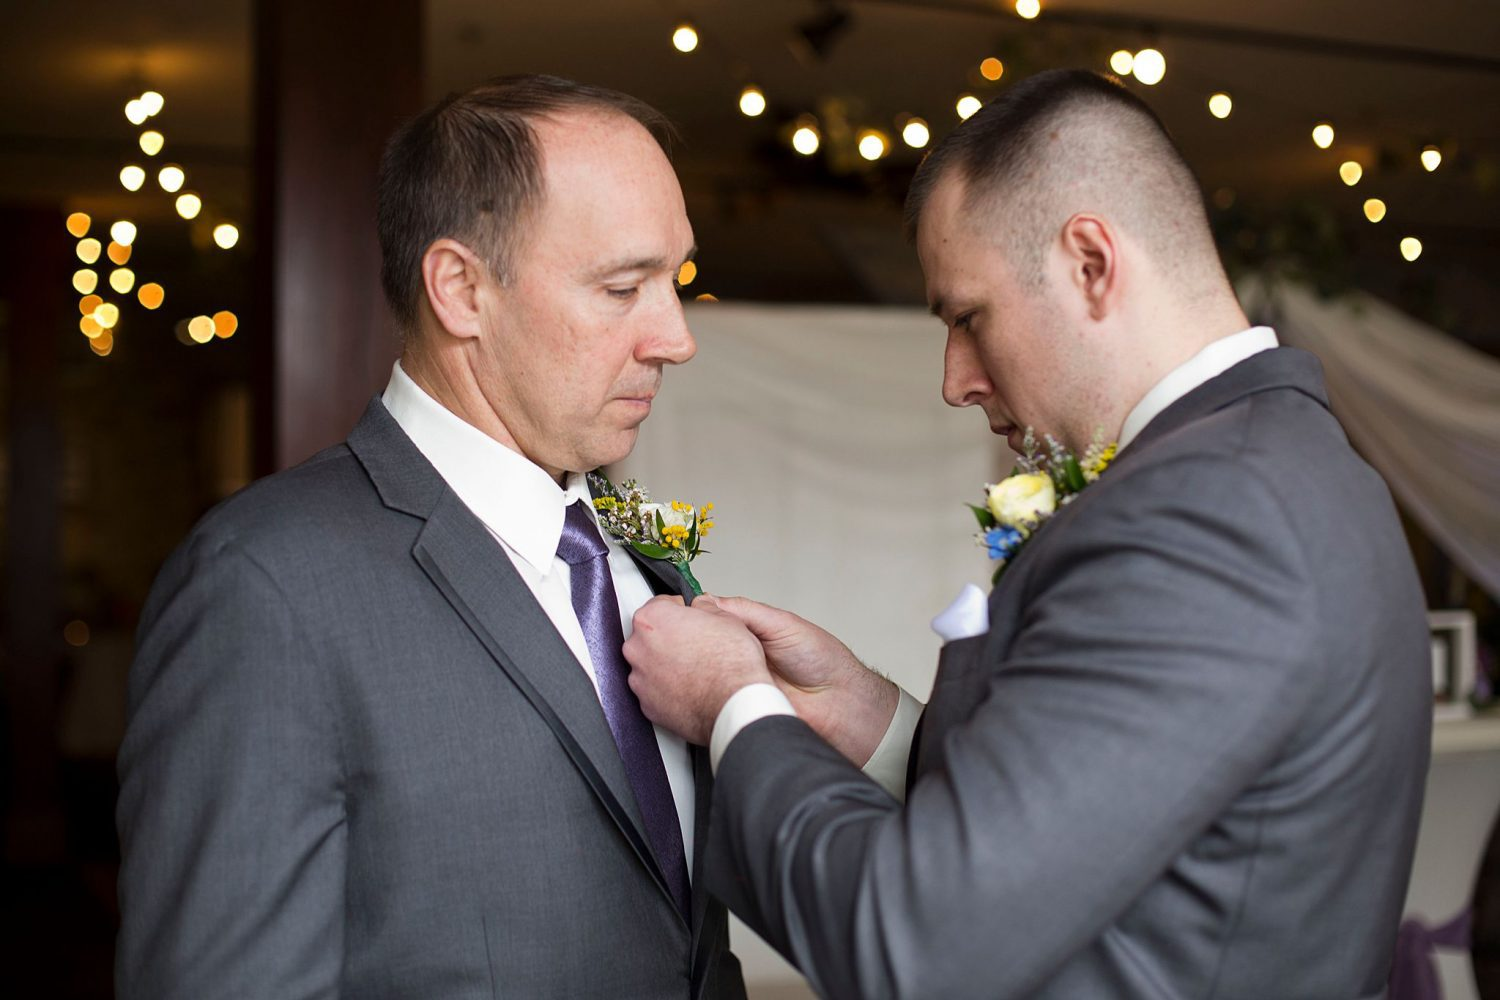 Groom pinning his father's boutonniere on.